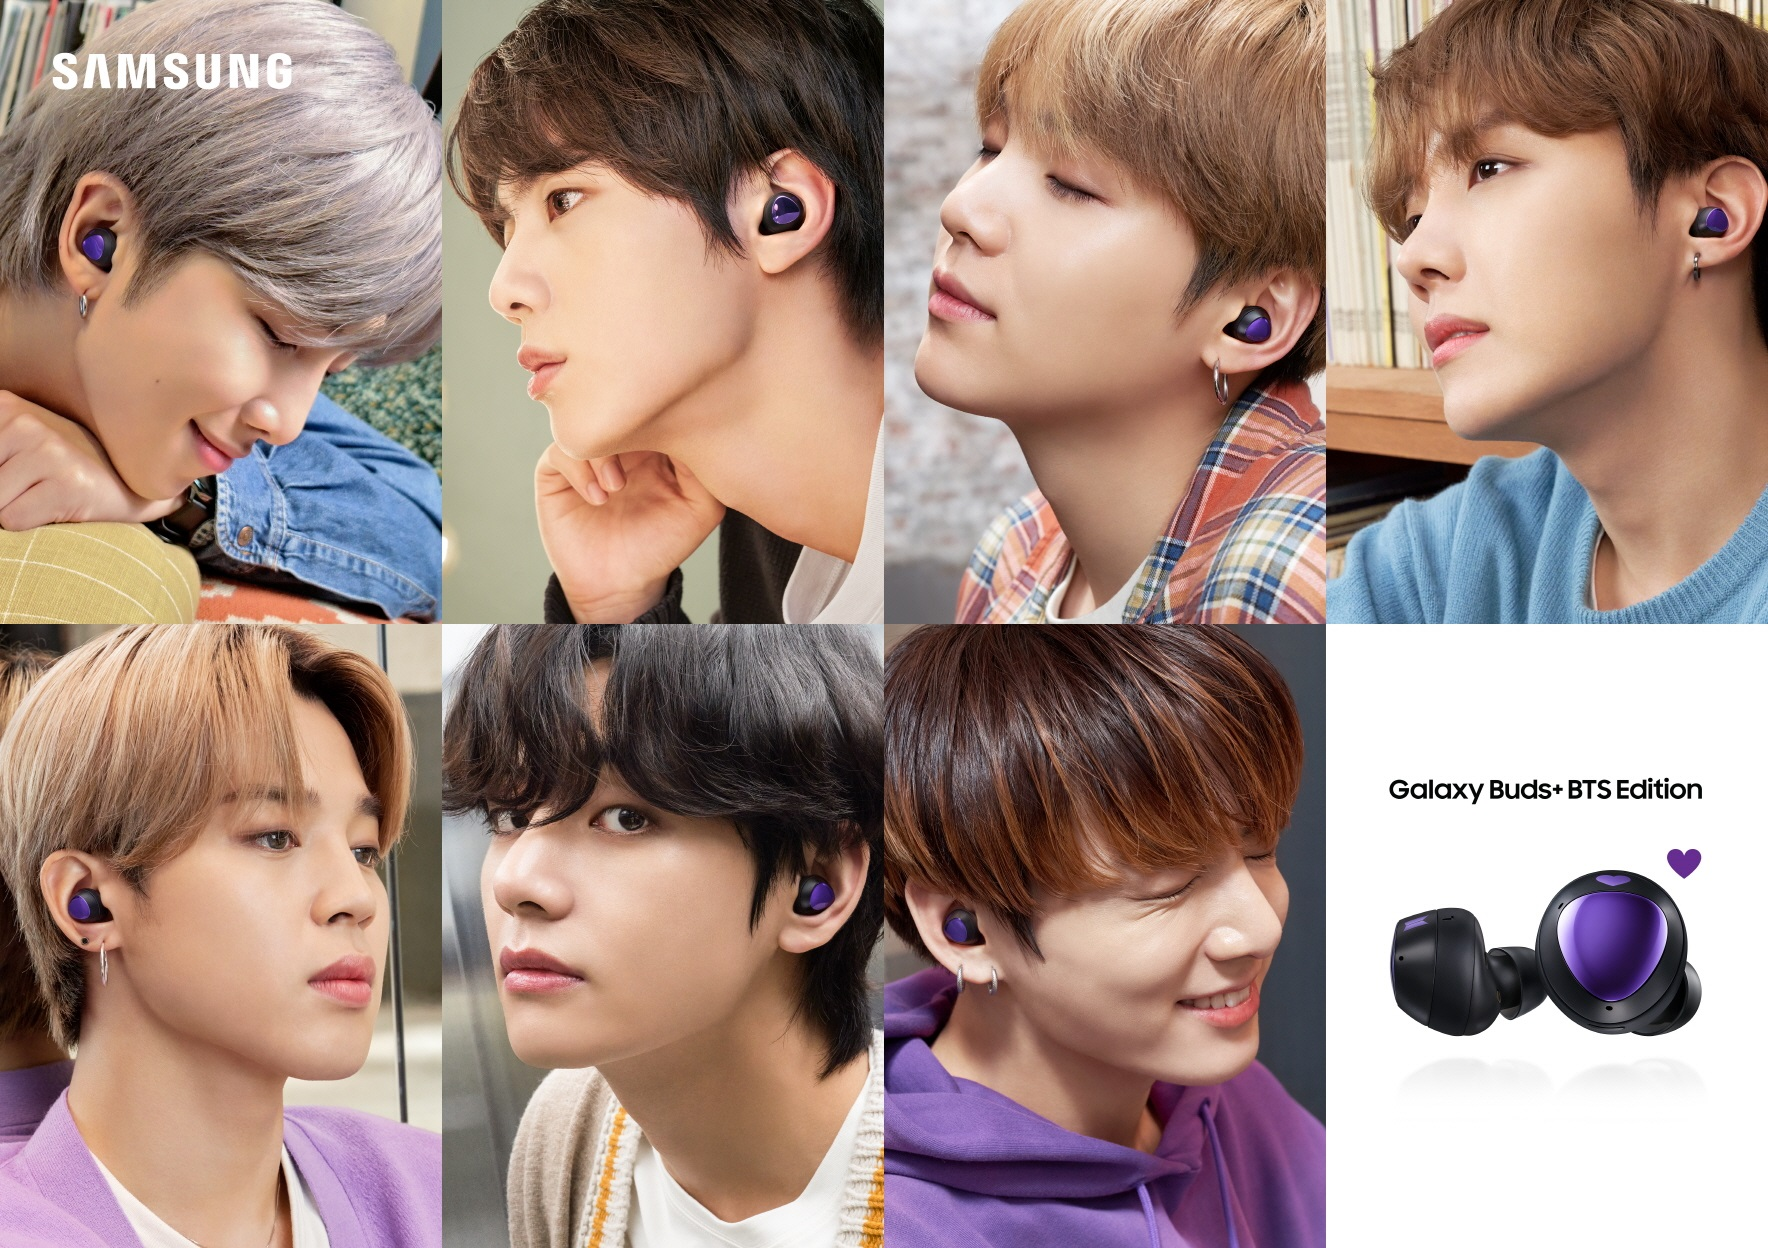 Samsung Galaxy Buds+ BTS Edition TWS earphones